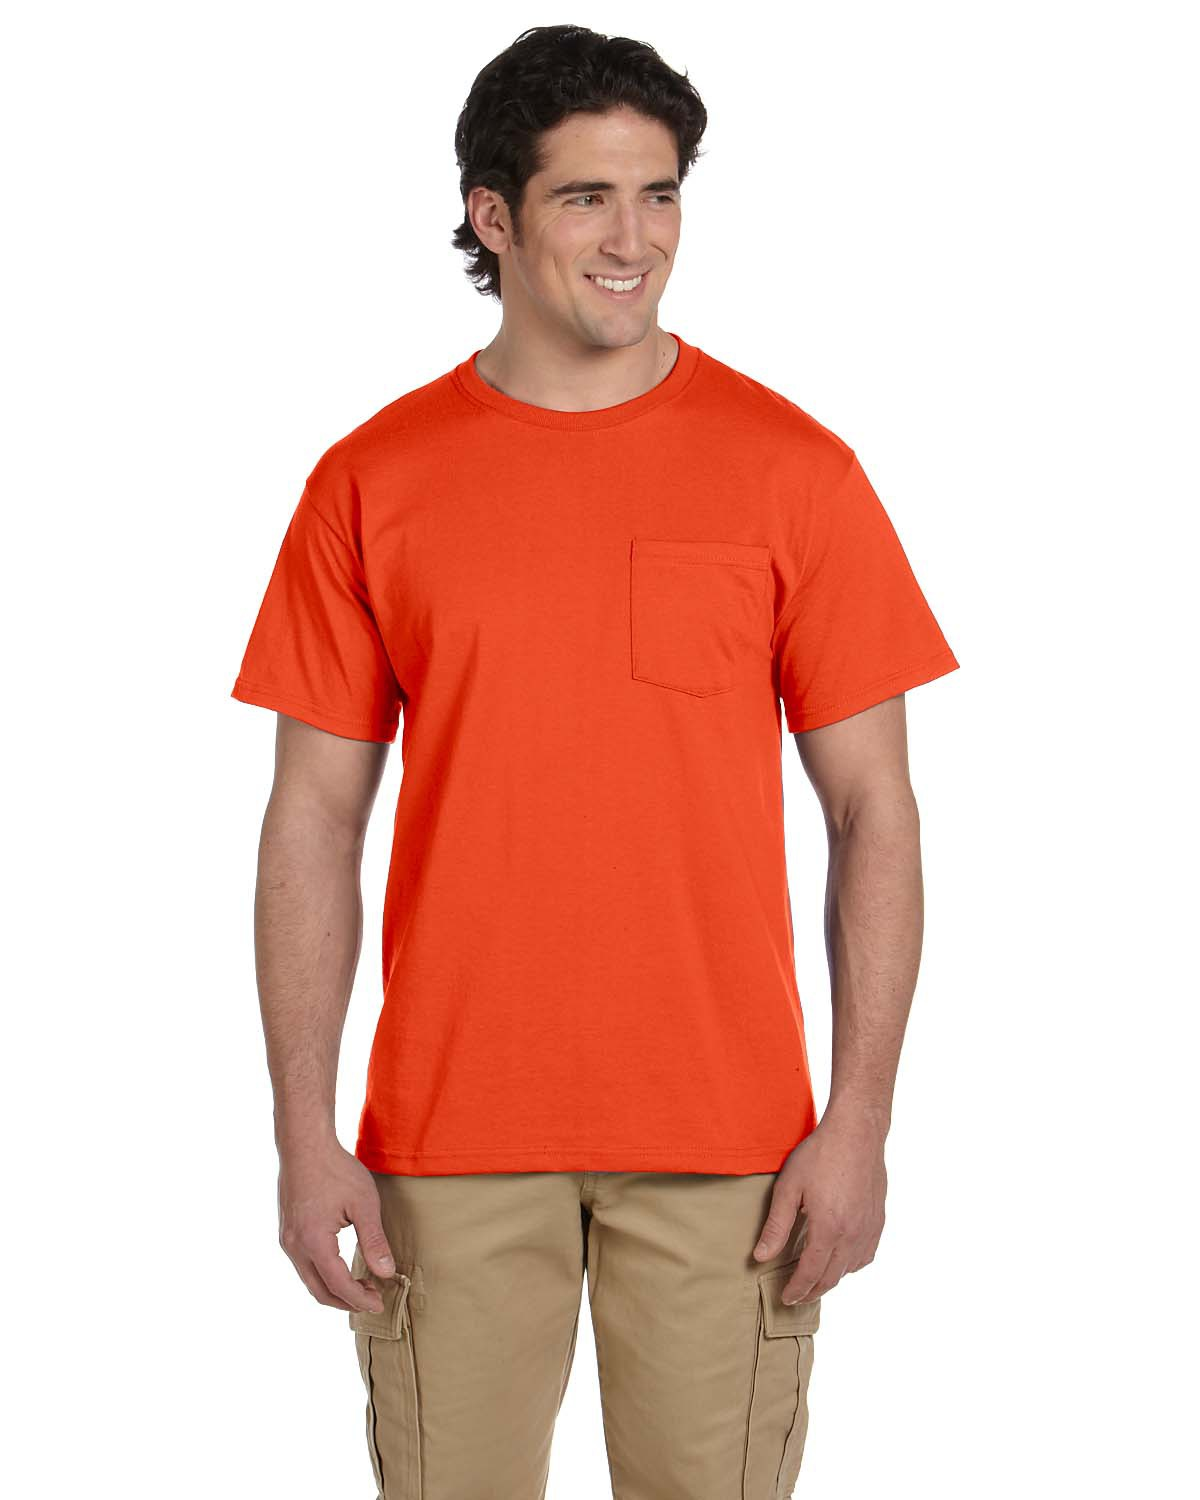 Jerzees 29P Men's Dri-POWER® ACTIVE 5.6 oz., 50/50 Pocket T-Shirt at GotApparel